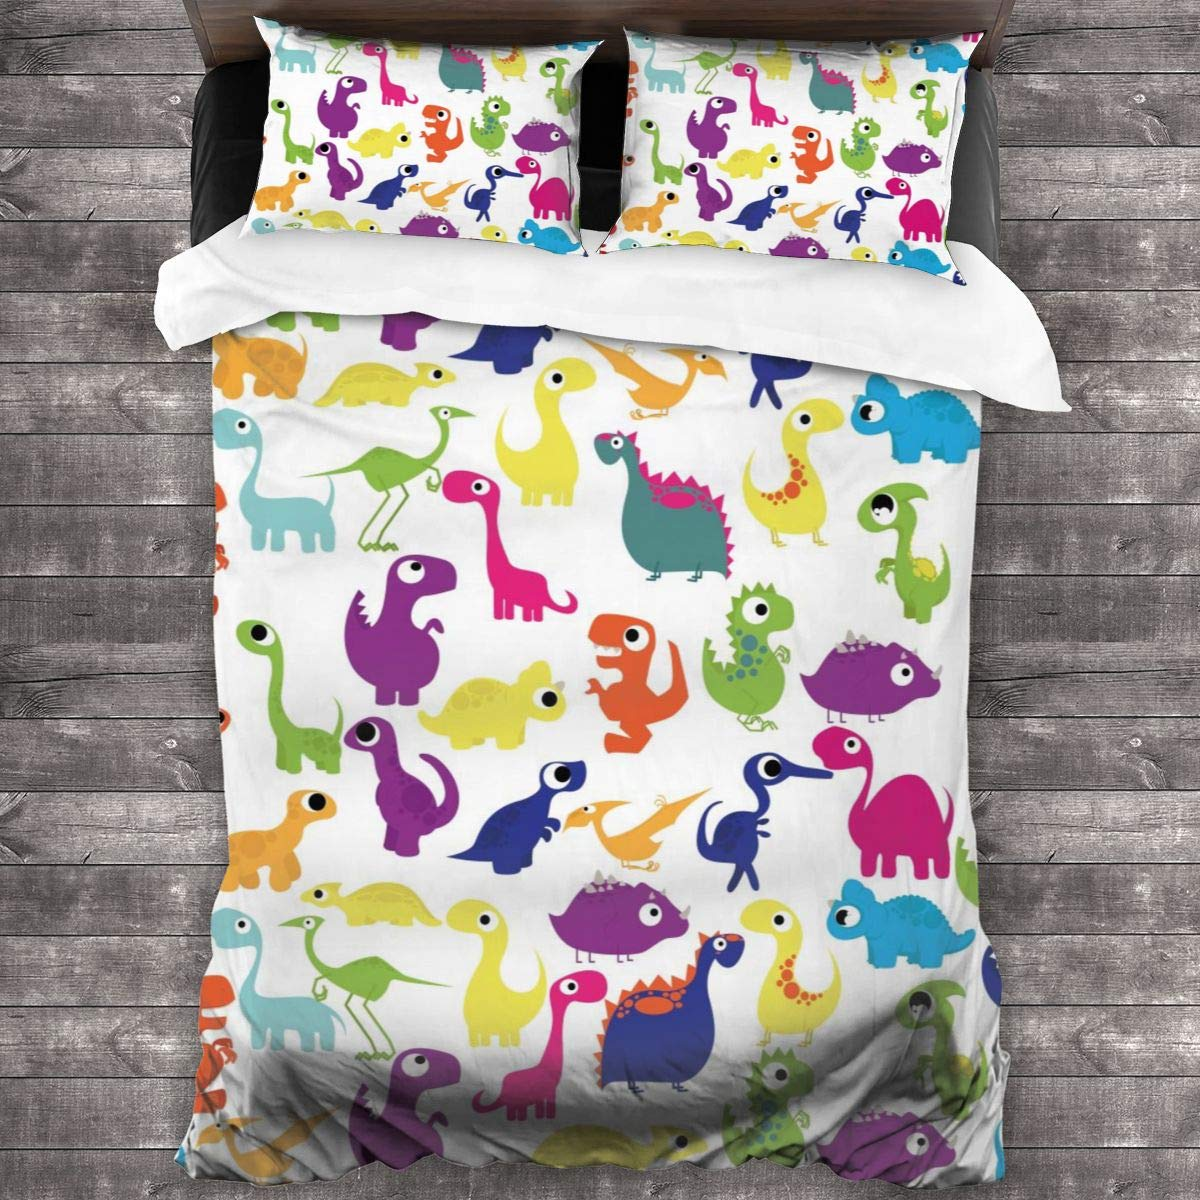 """ACHOGI Twin Size Dinosaurs Print Bedding Duvet Cover 3 Piece Set Soft and Breathable with Zipper Closure & Corner Ties 86""""x70"""""""